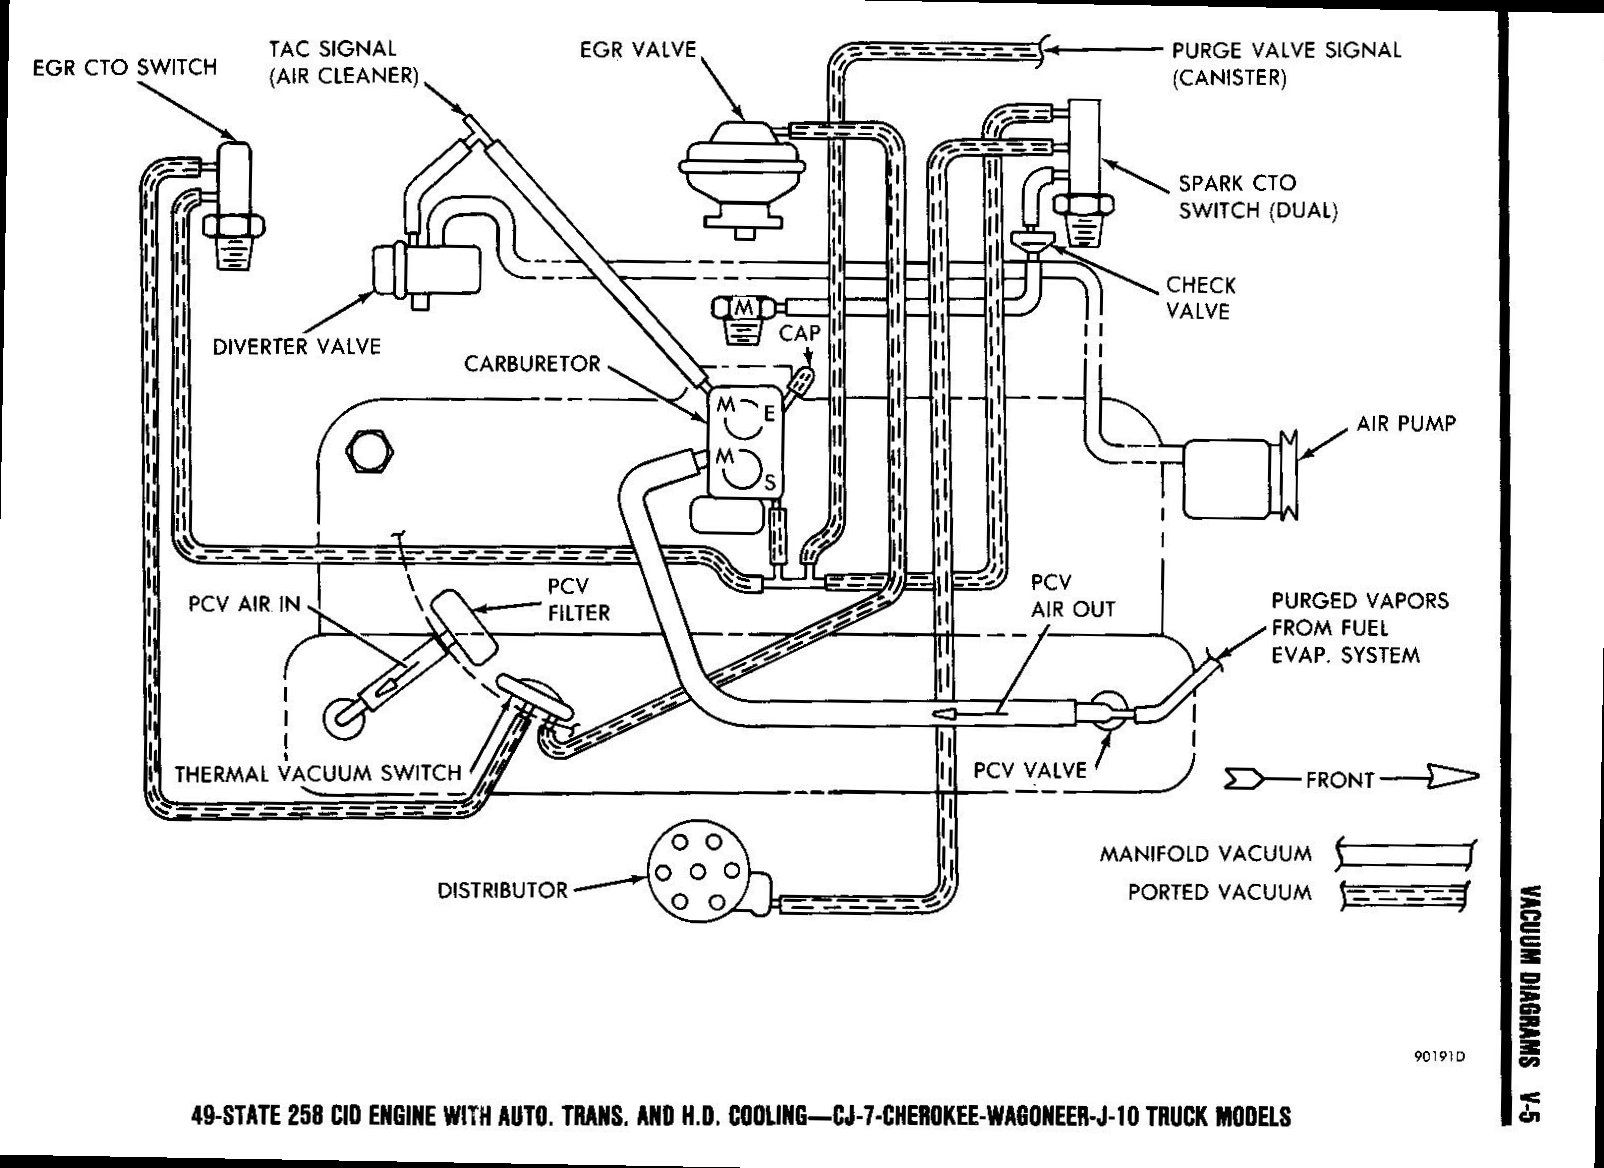 cj5 258 vacuum diagram! jeepforum com jeep diagram, jeep, jeep cj Jeep CJ7 Driveline Diagram